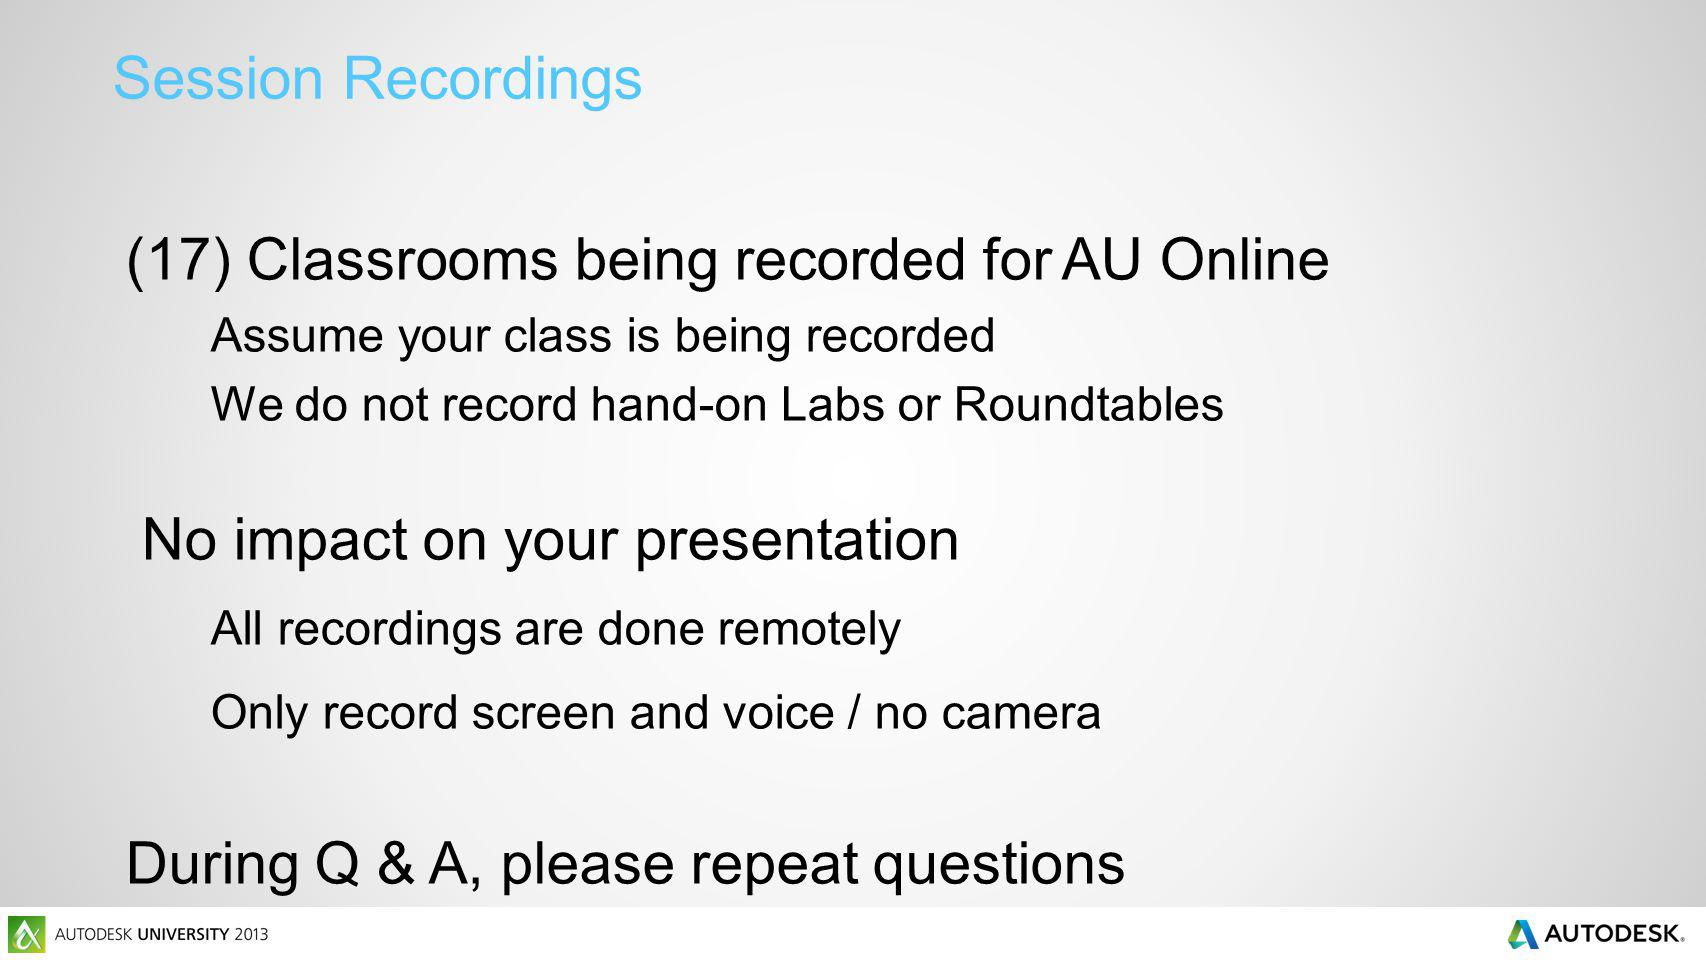 Session Recordings (17) Classrooms being recorded for AU Online Assume your class is being recorded We do not record hand-on Labs or Roundtables No im